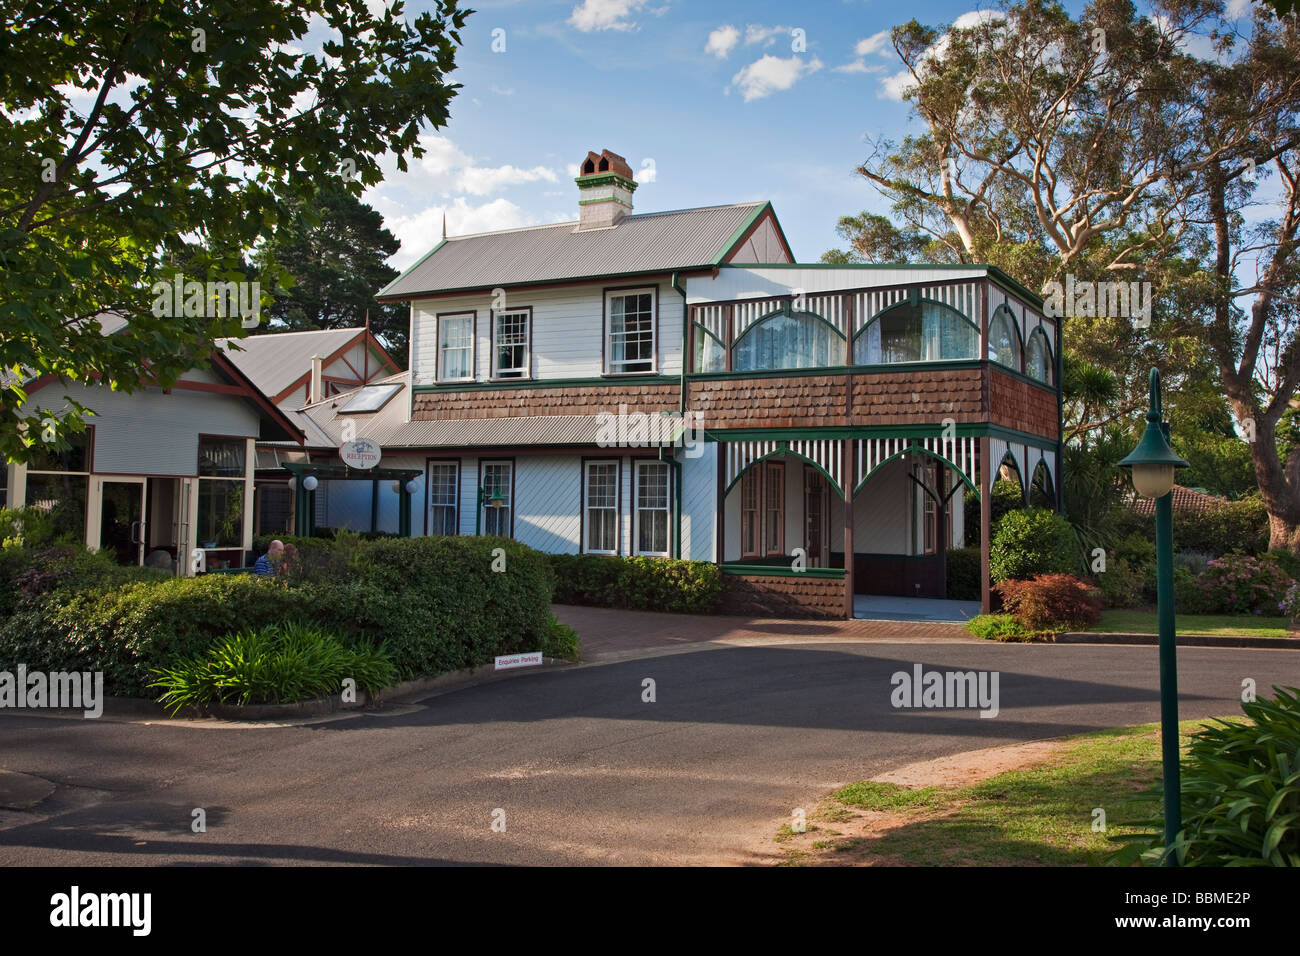 Australia New South Wales. La Maison Boutique Hotel at Katoomba in the Blue Mountains. - Stock Image